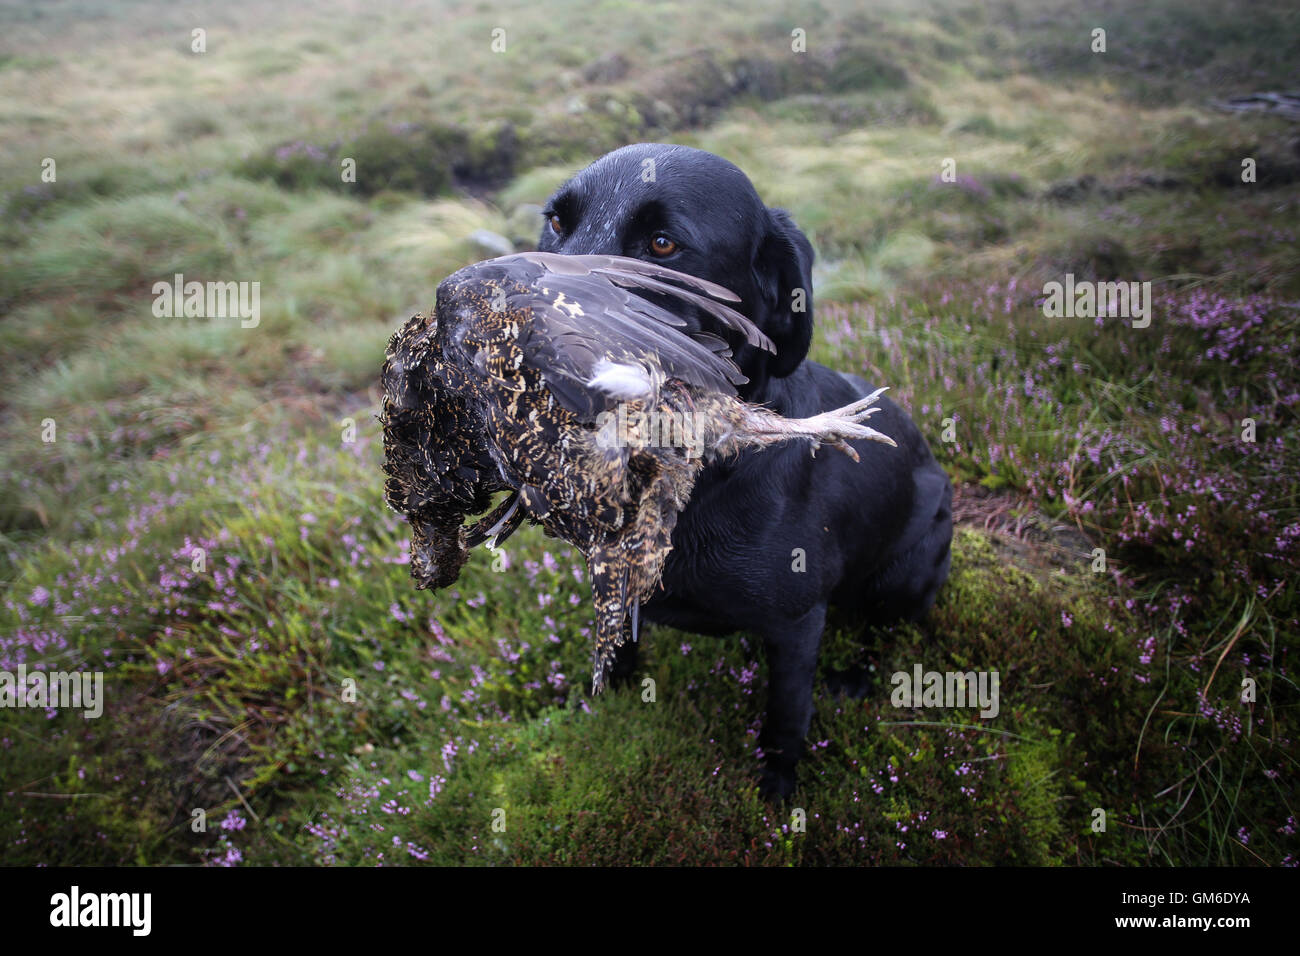 A dog holds a grouse in it's mouth during a shoot in high on the Yorkshire moors in Swinithwaite, North Yorkshire. - Stock Image